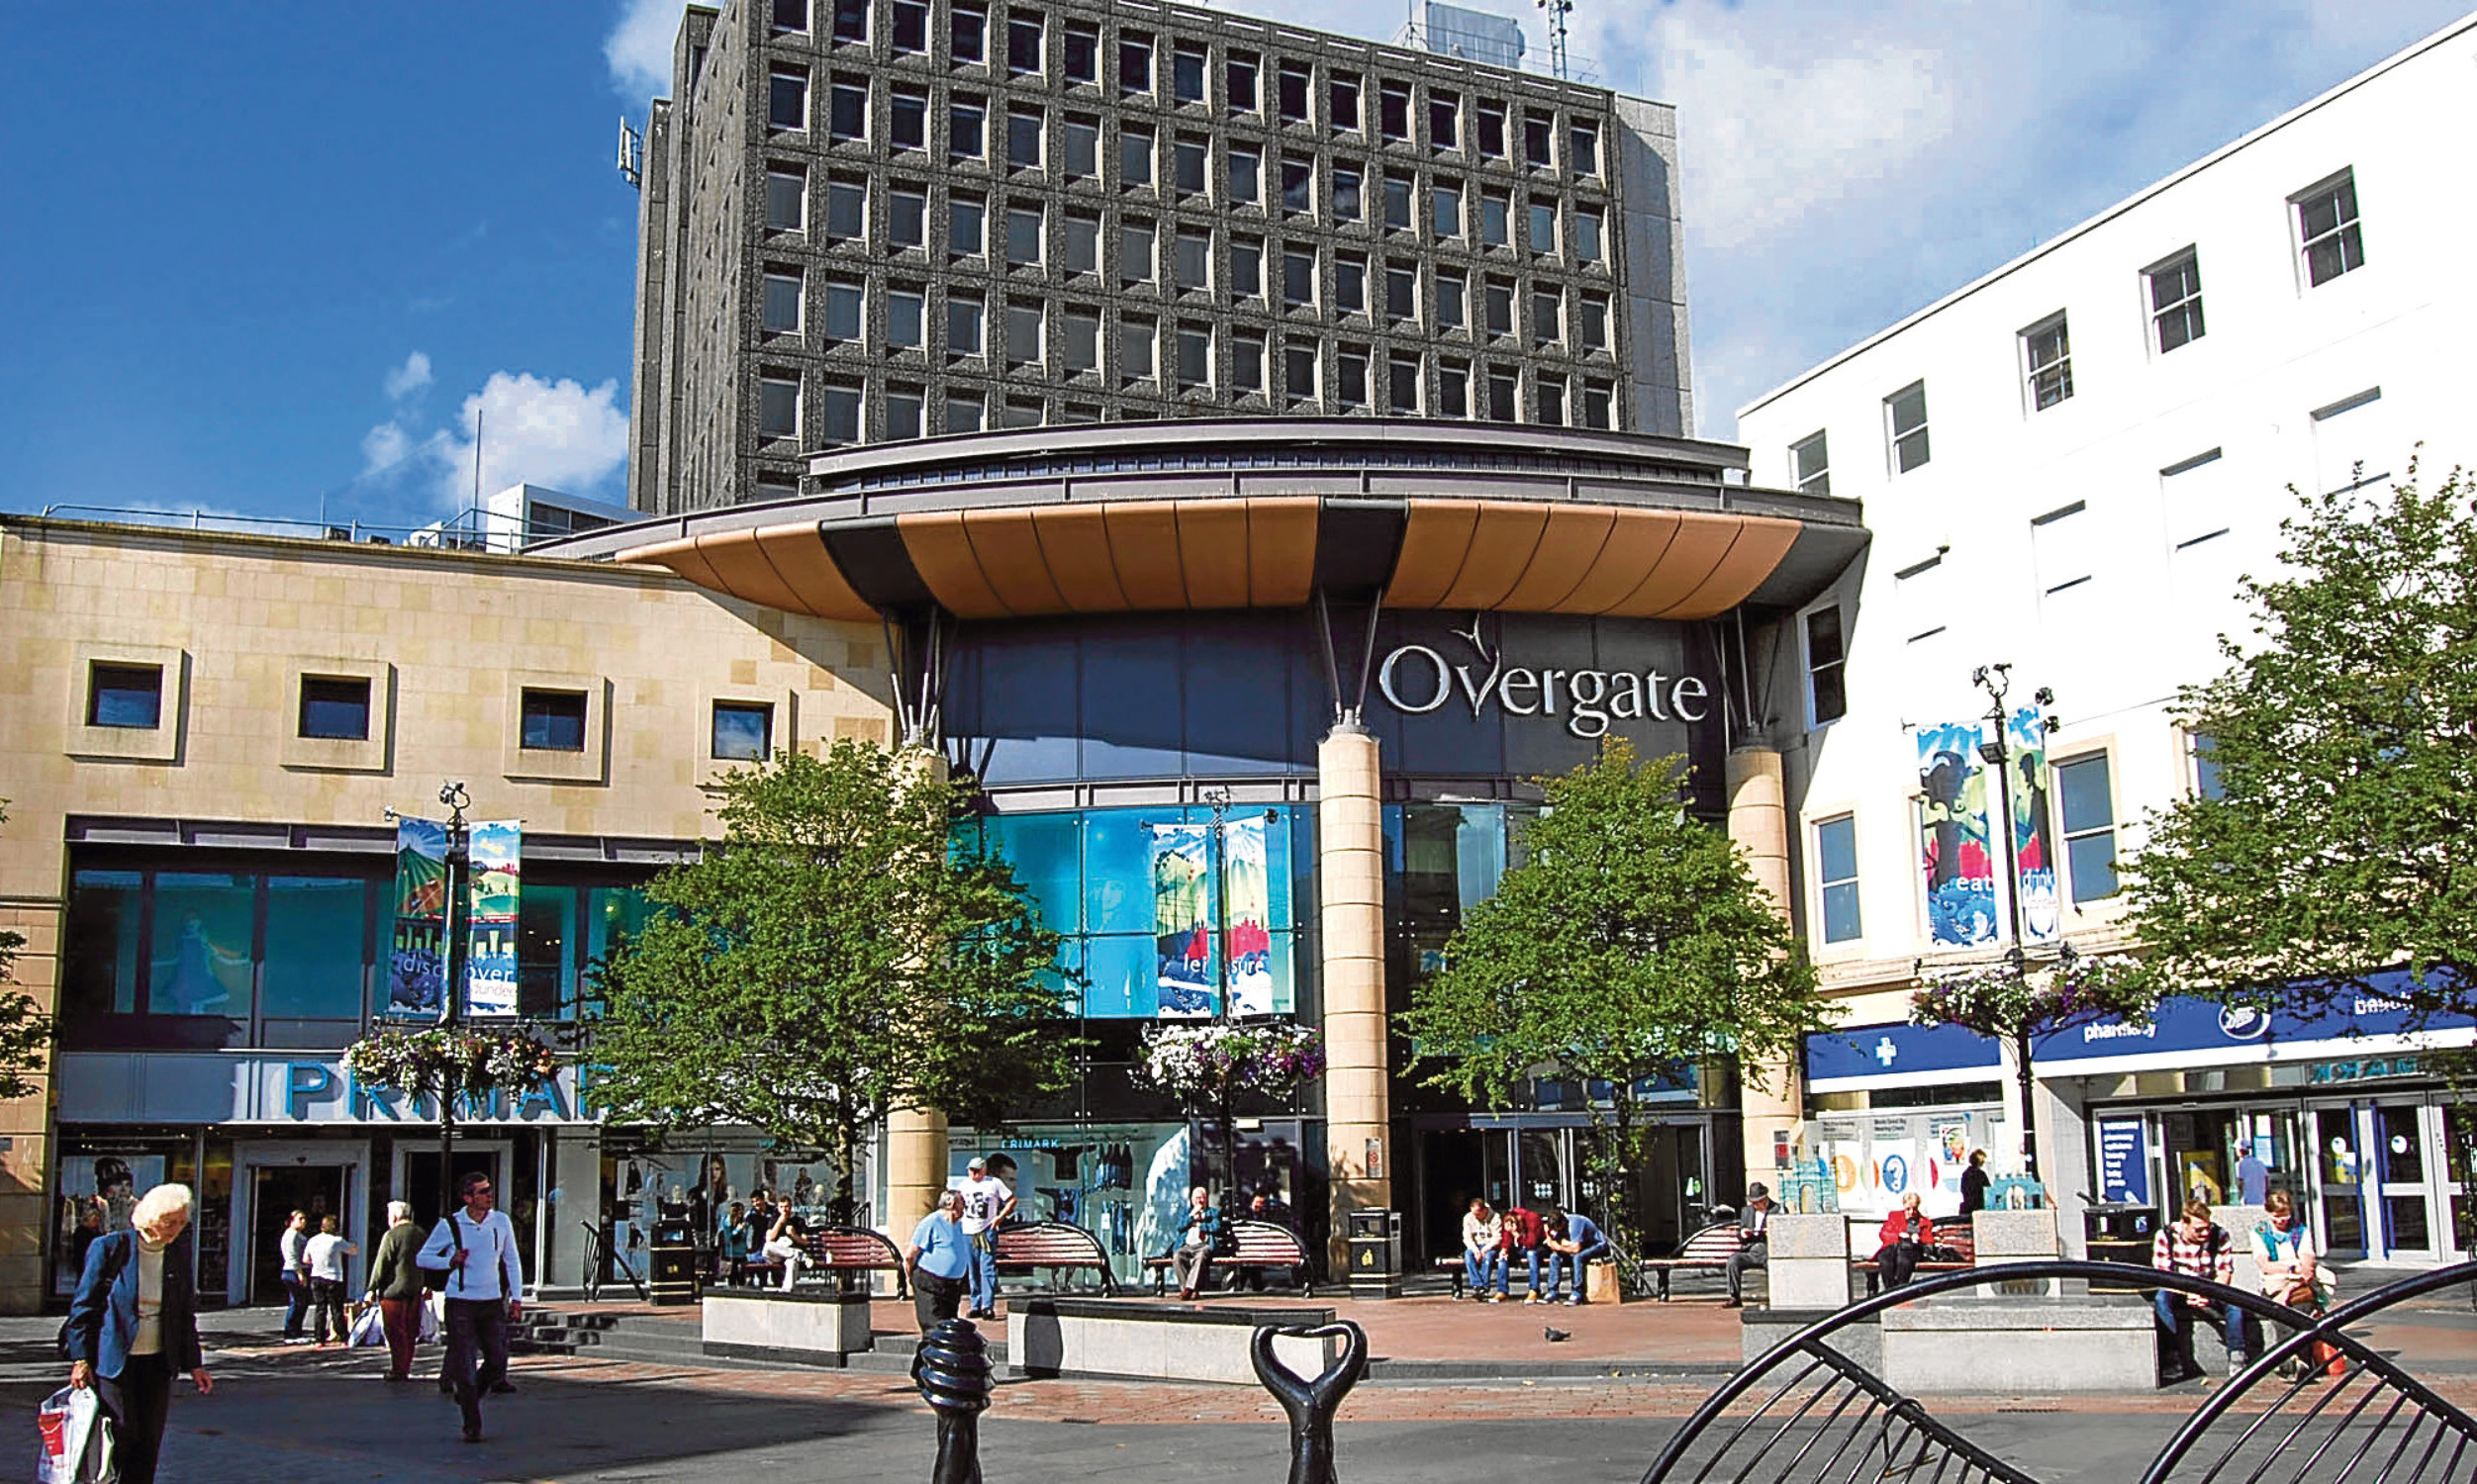 The Overgate Shopping Centre in Dundee